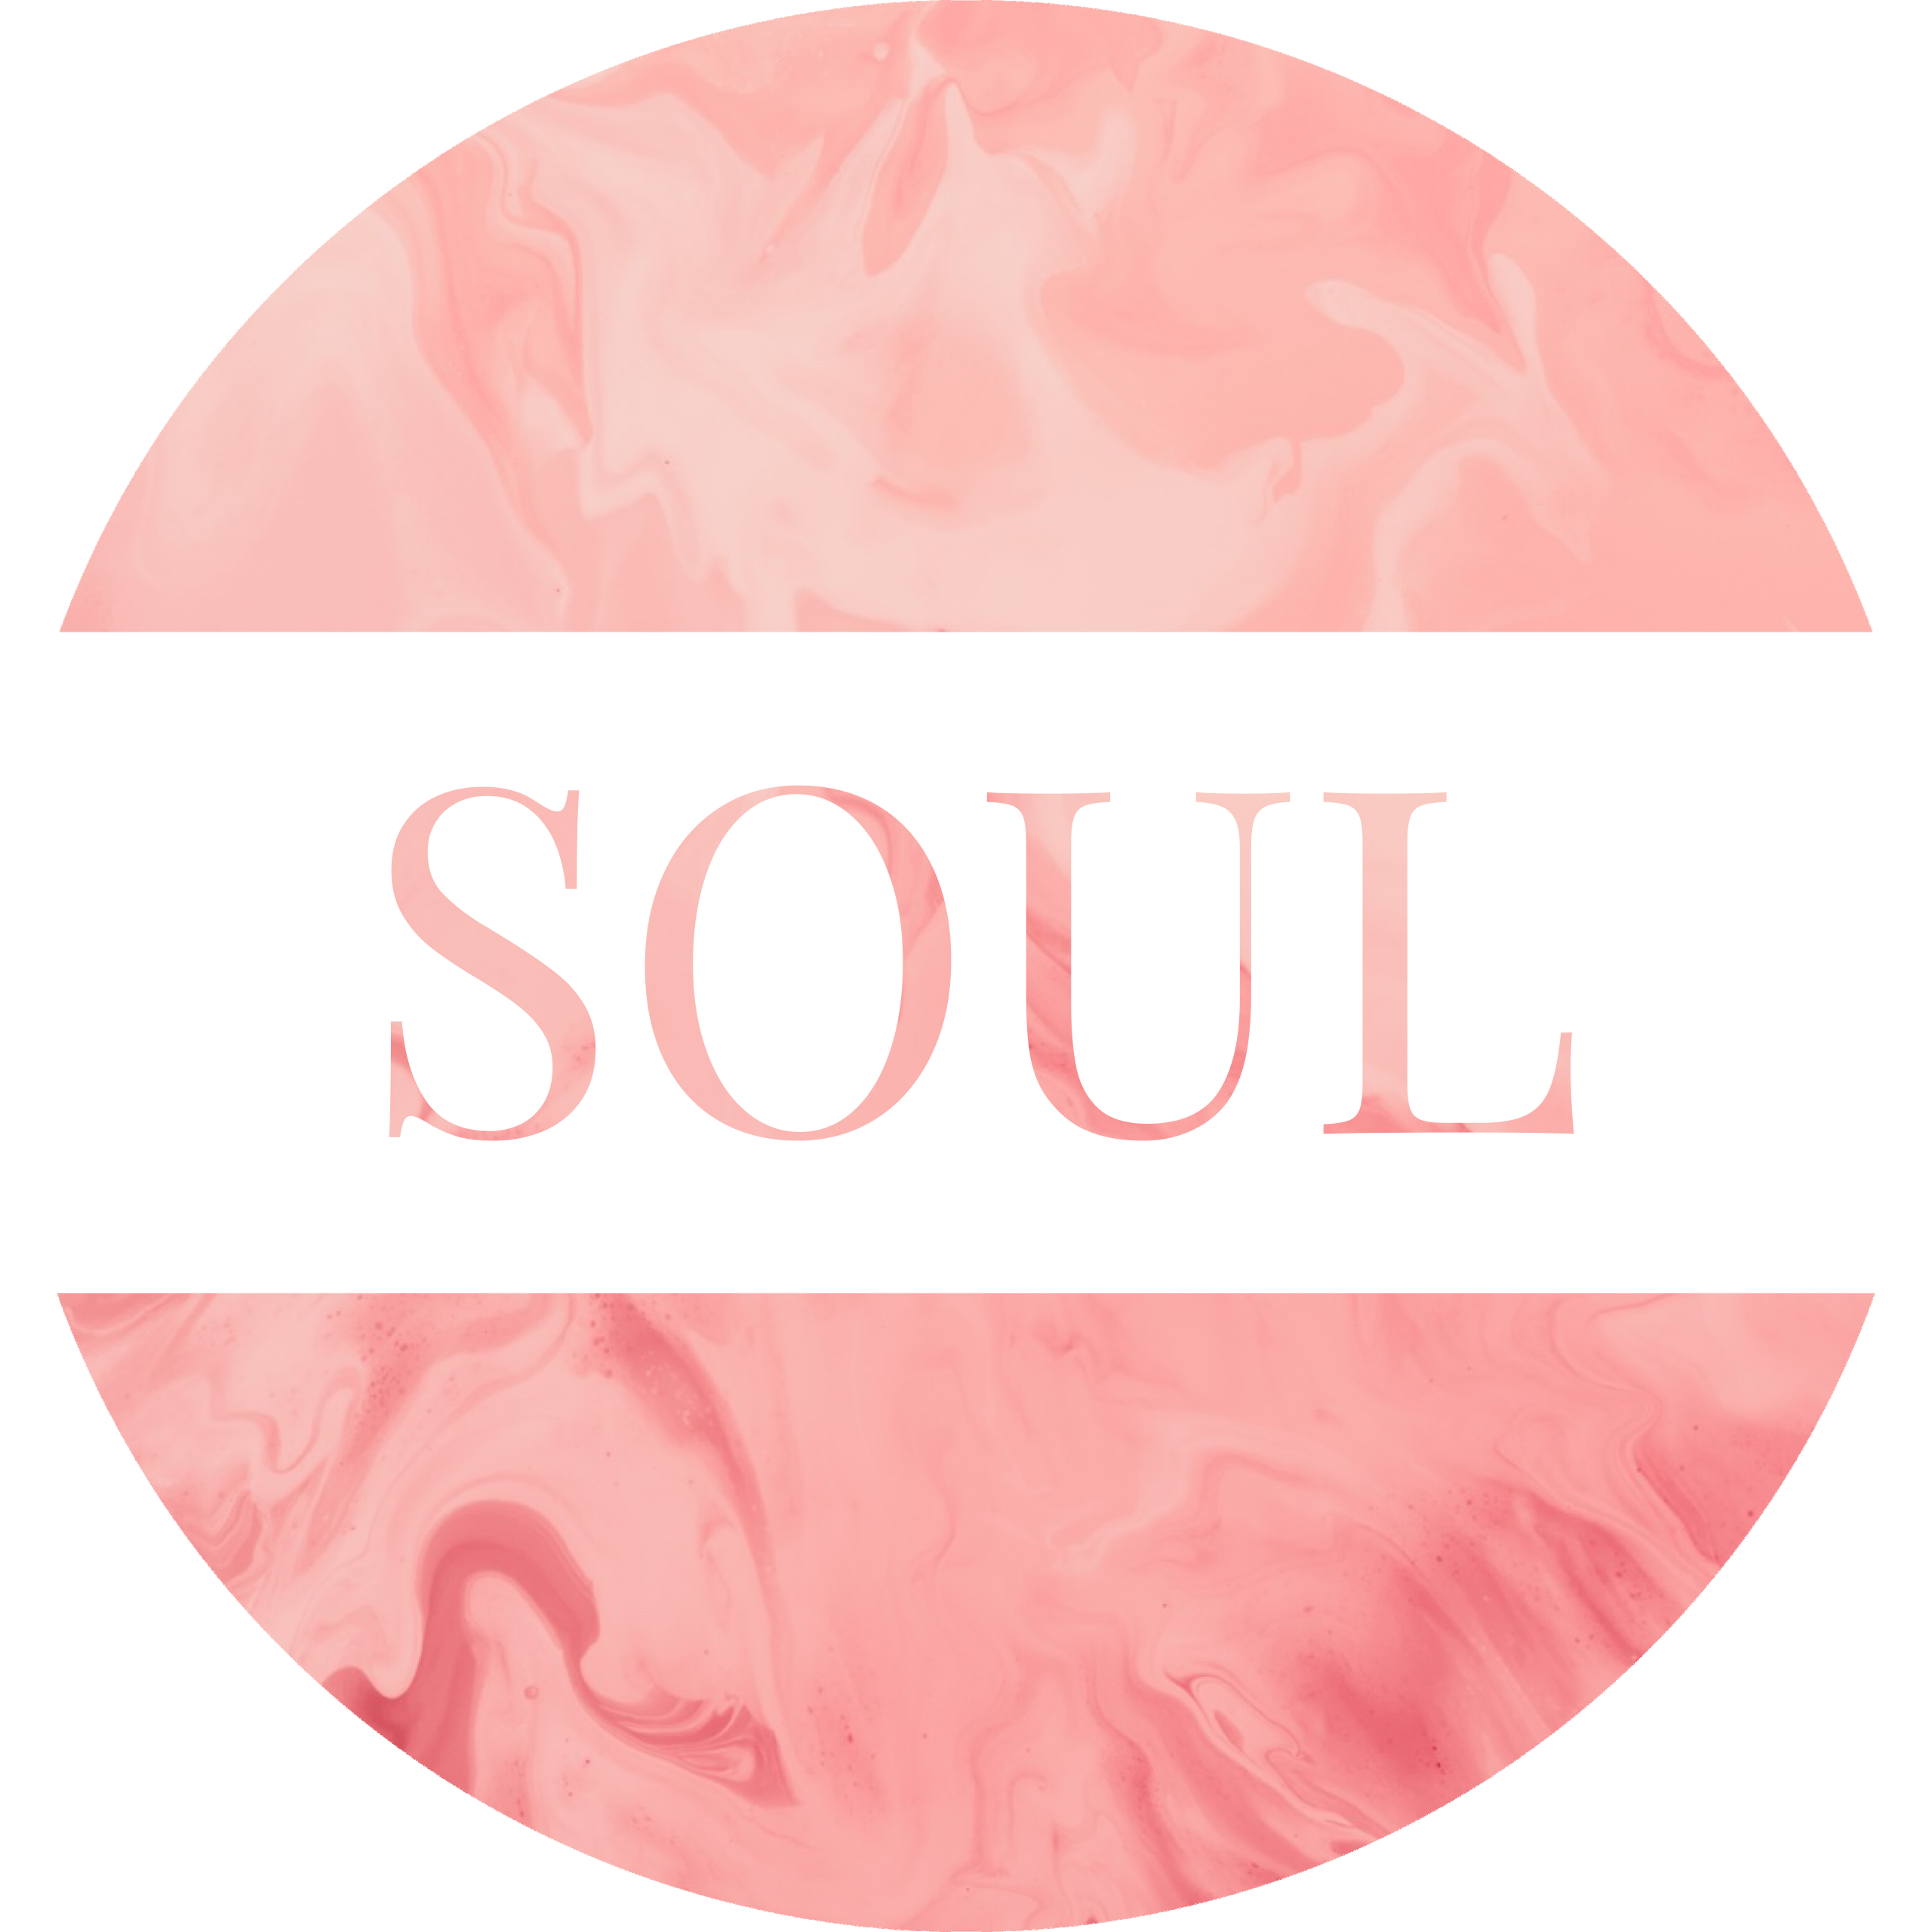 Round image in a swirly light pink with a white banner running through the middle with the word SOUL in the swirly pink color.